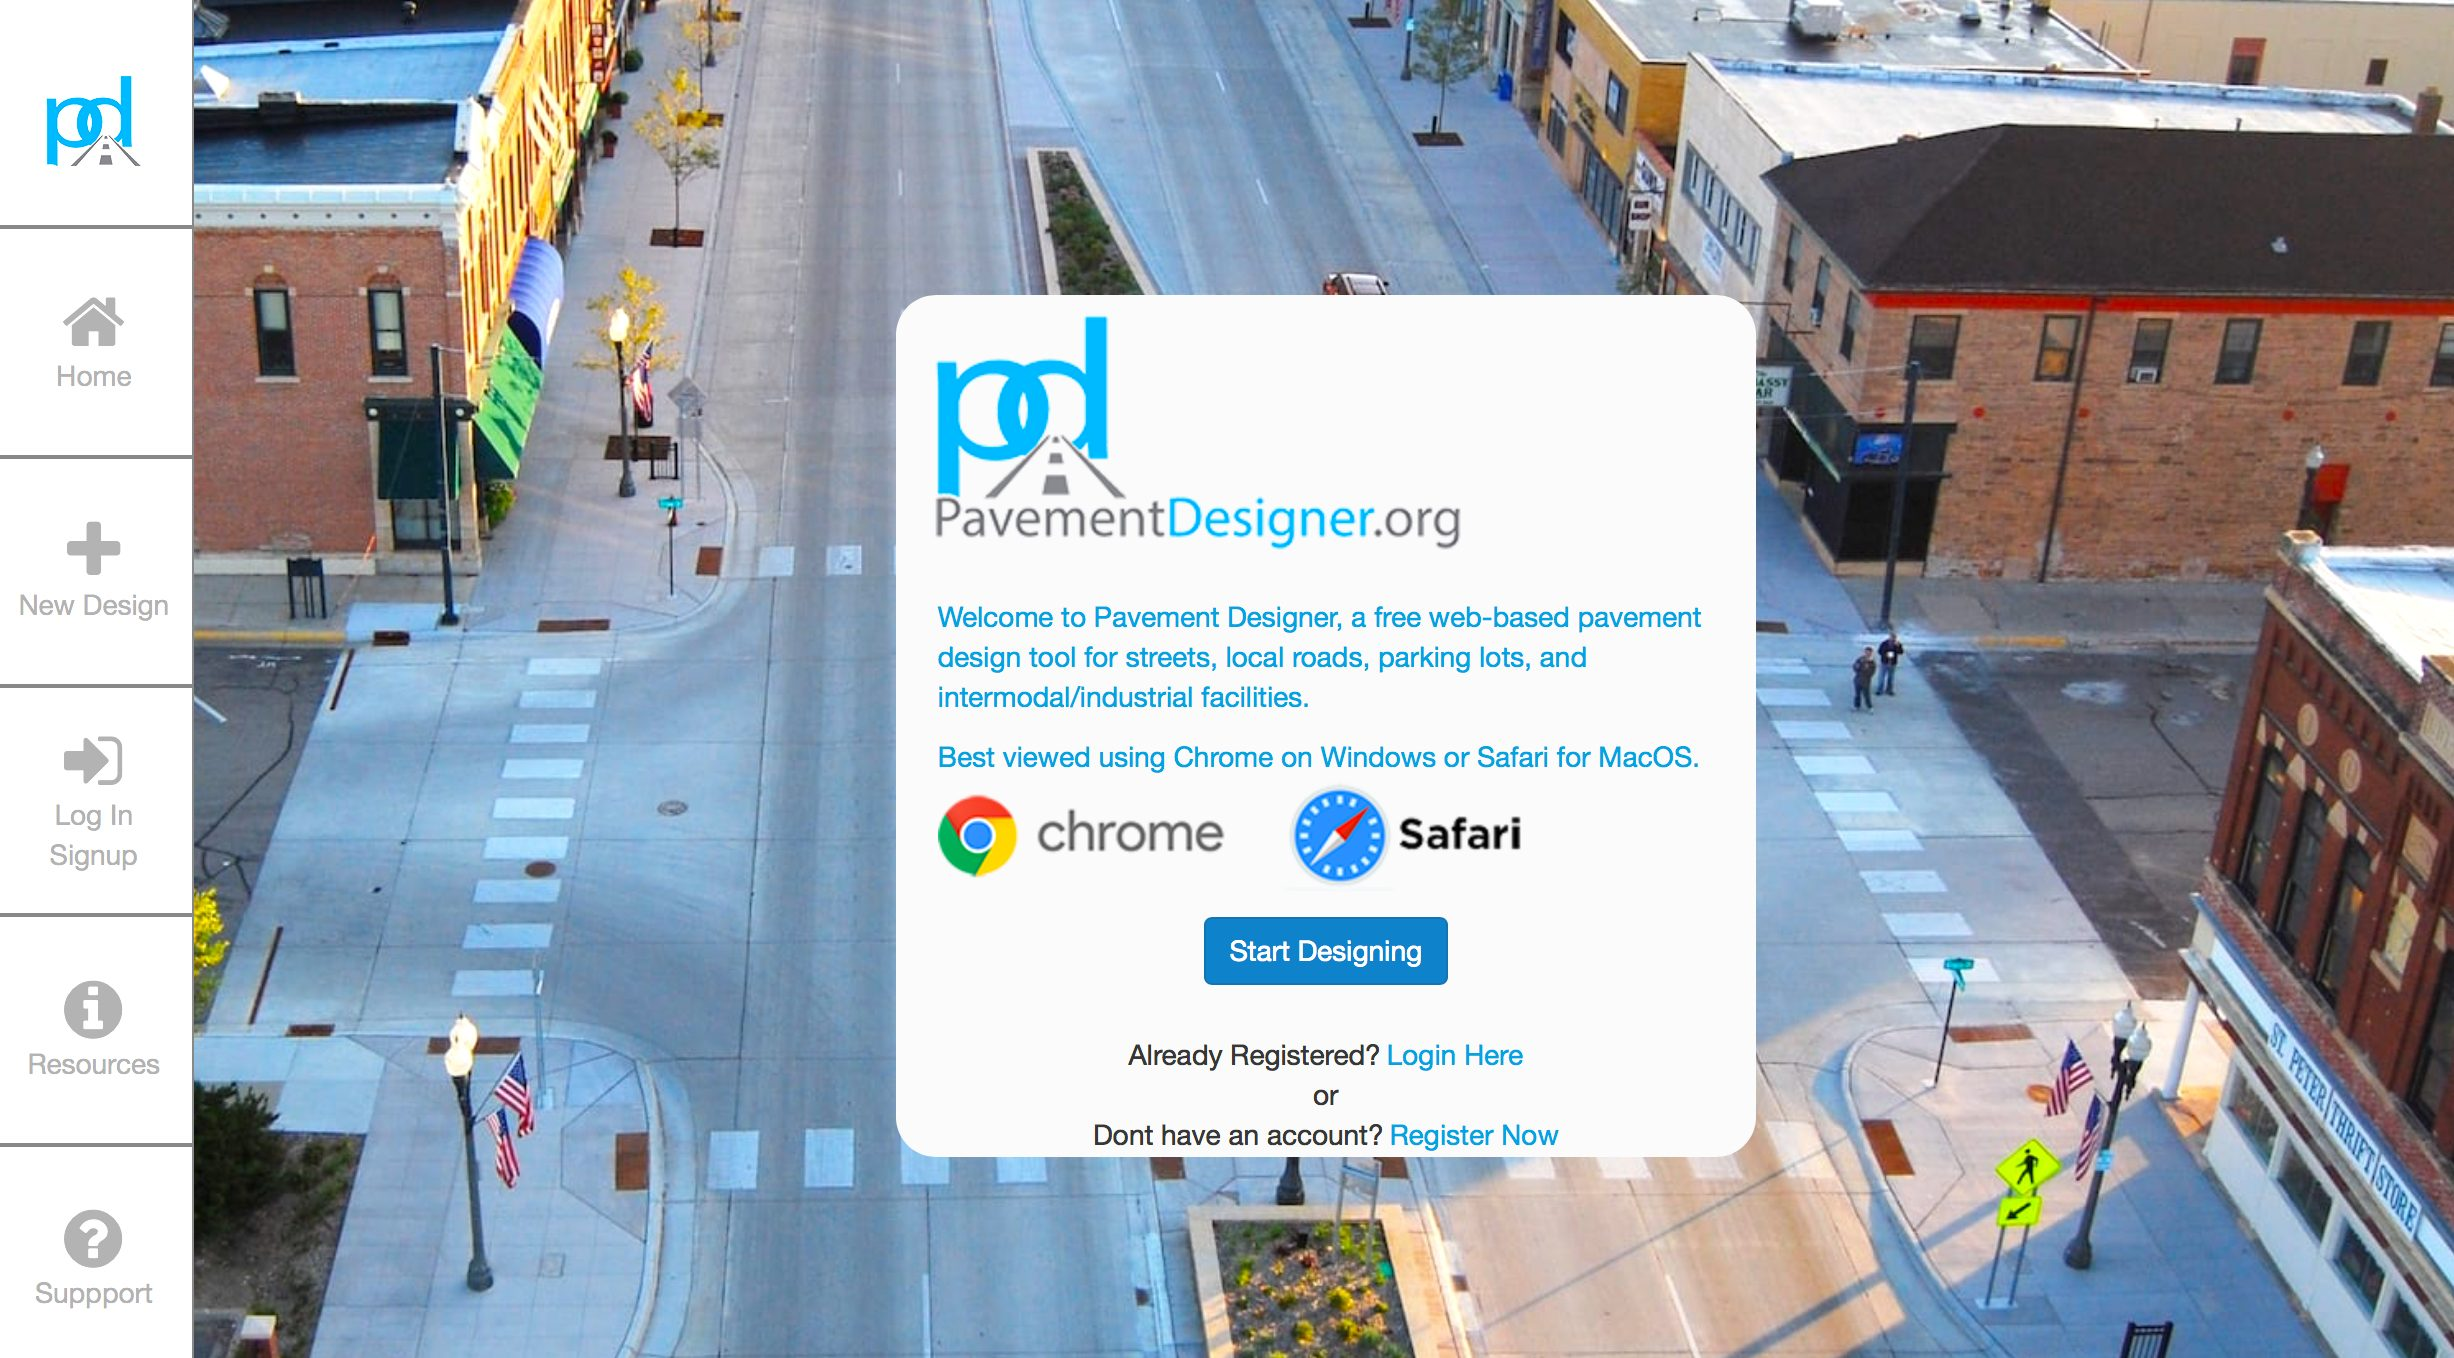 """WEBINAR Feb 28: To Continue Outreach, Education & Promotion of """"PavementDesigner.org"""""""